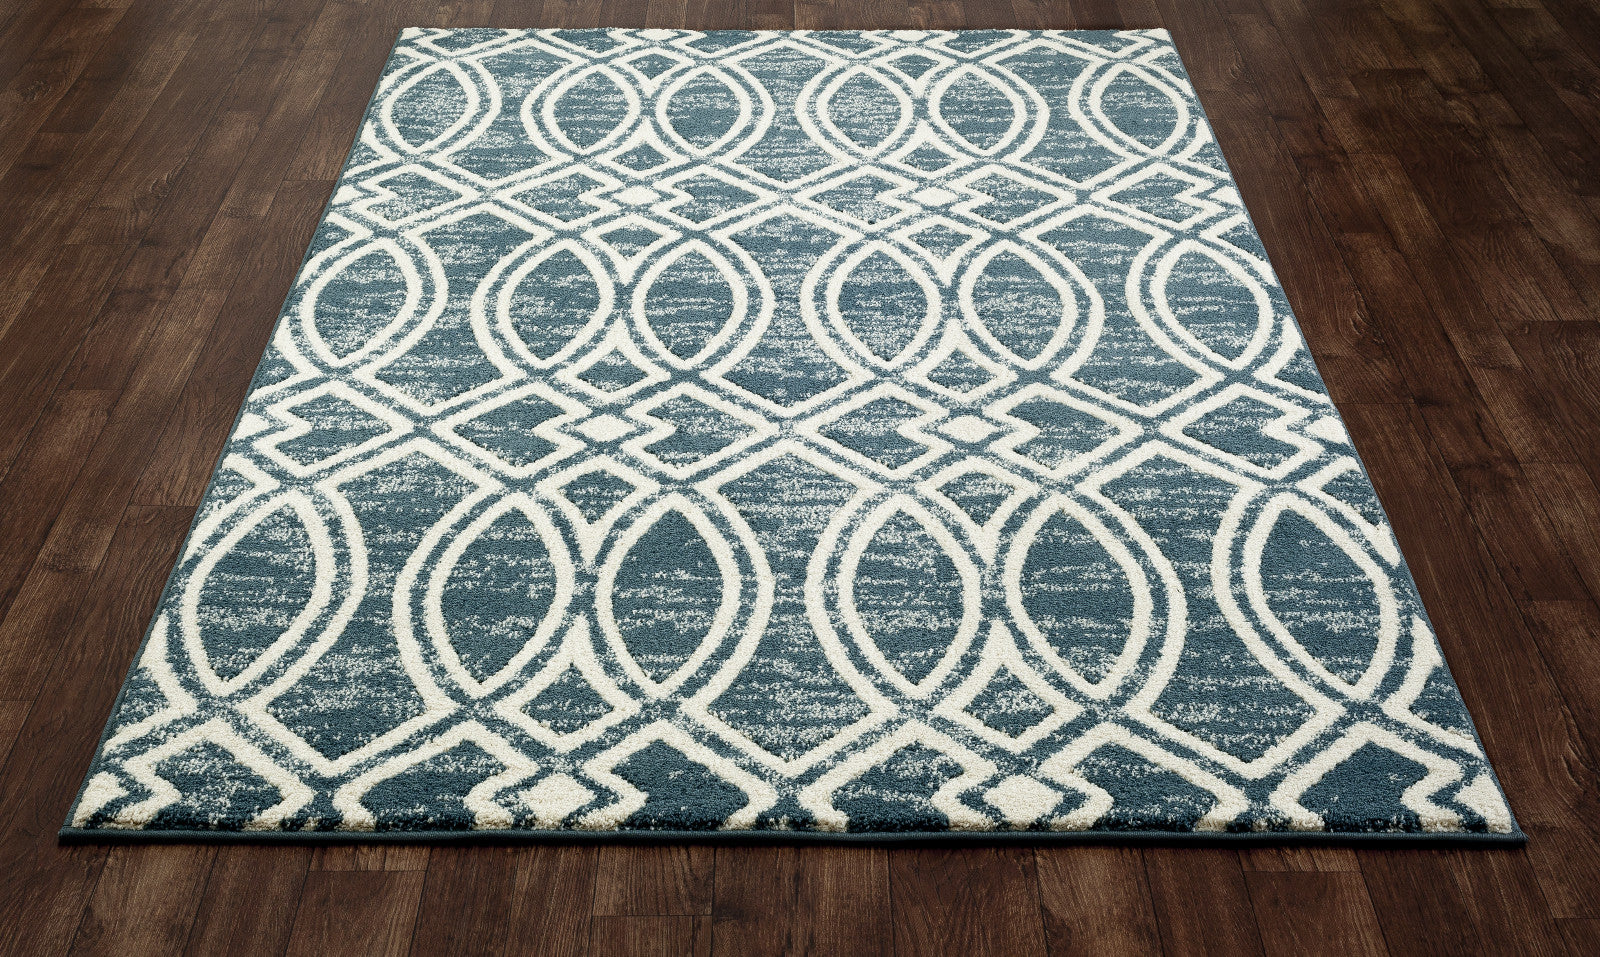 Art Carpet Highline TW-00-013 Aqua Area Rug